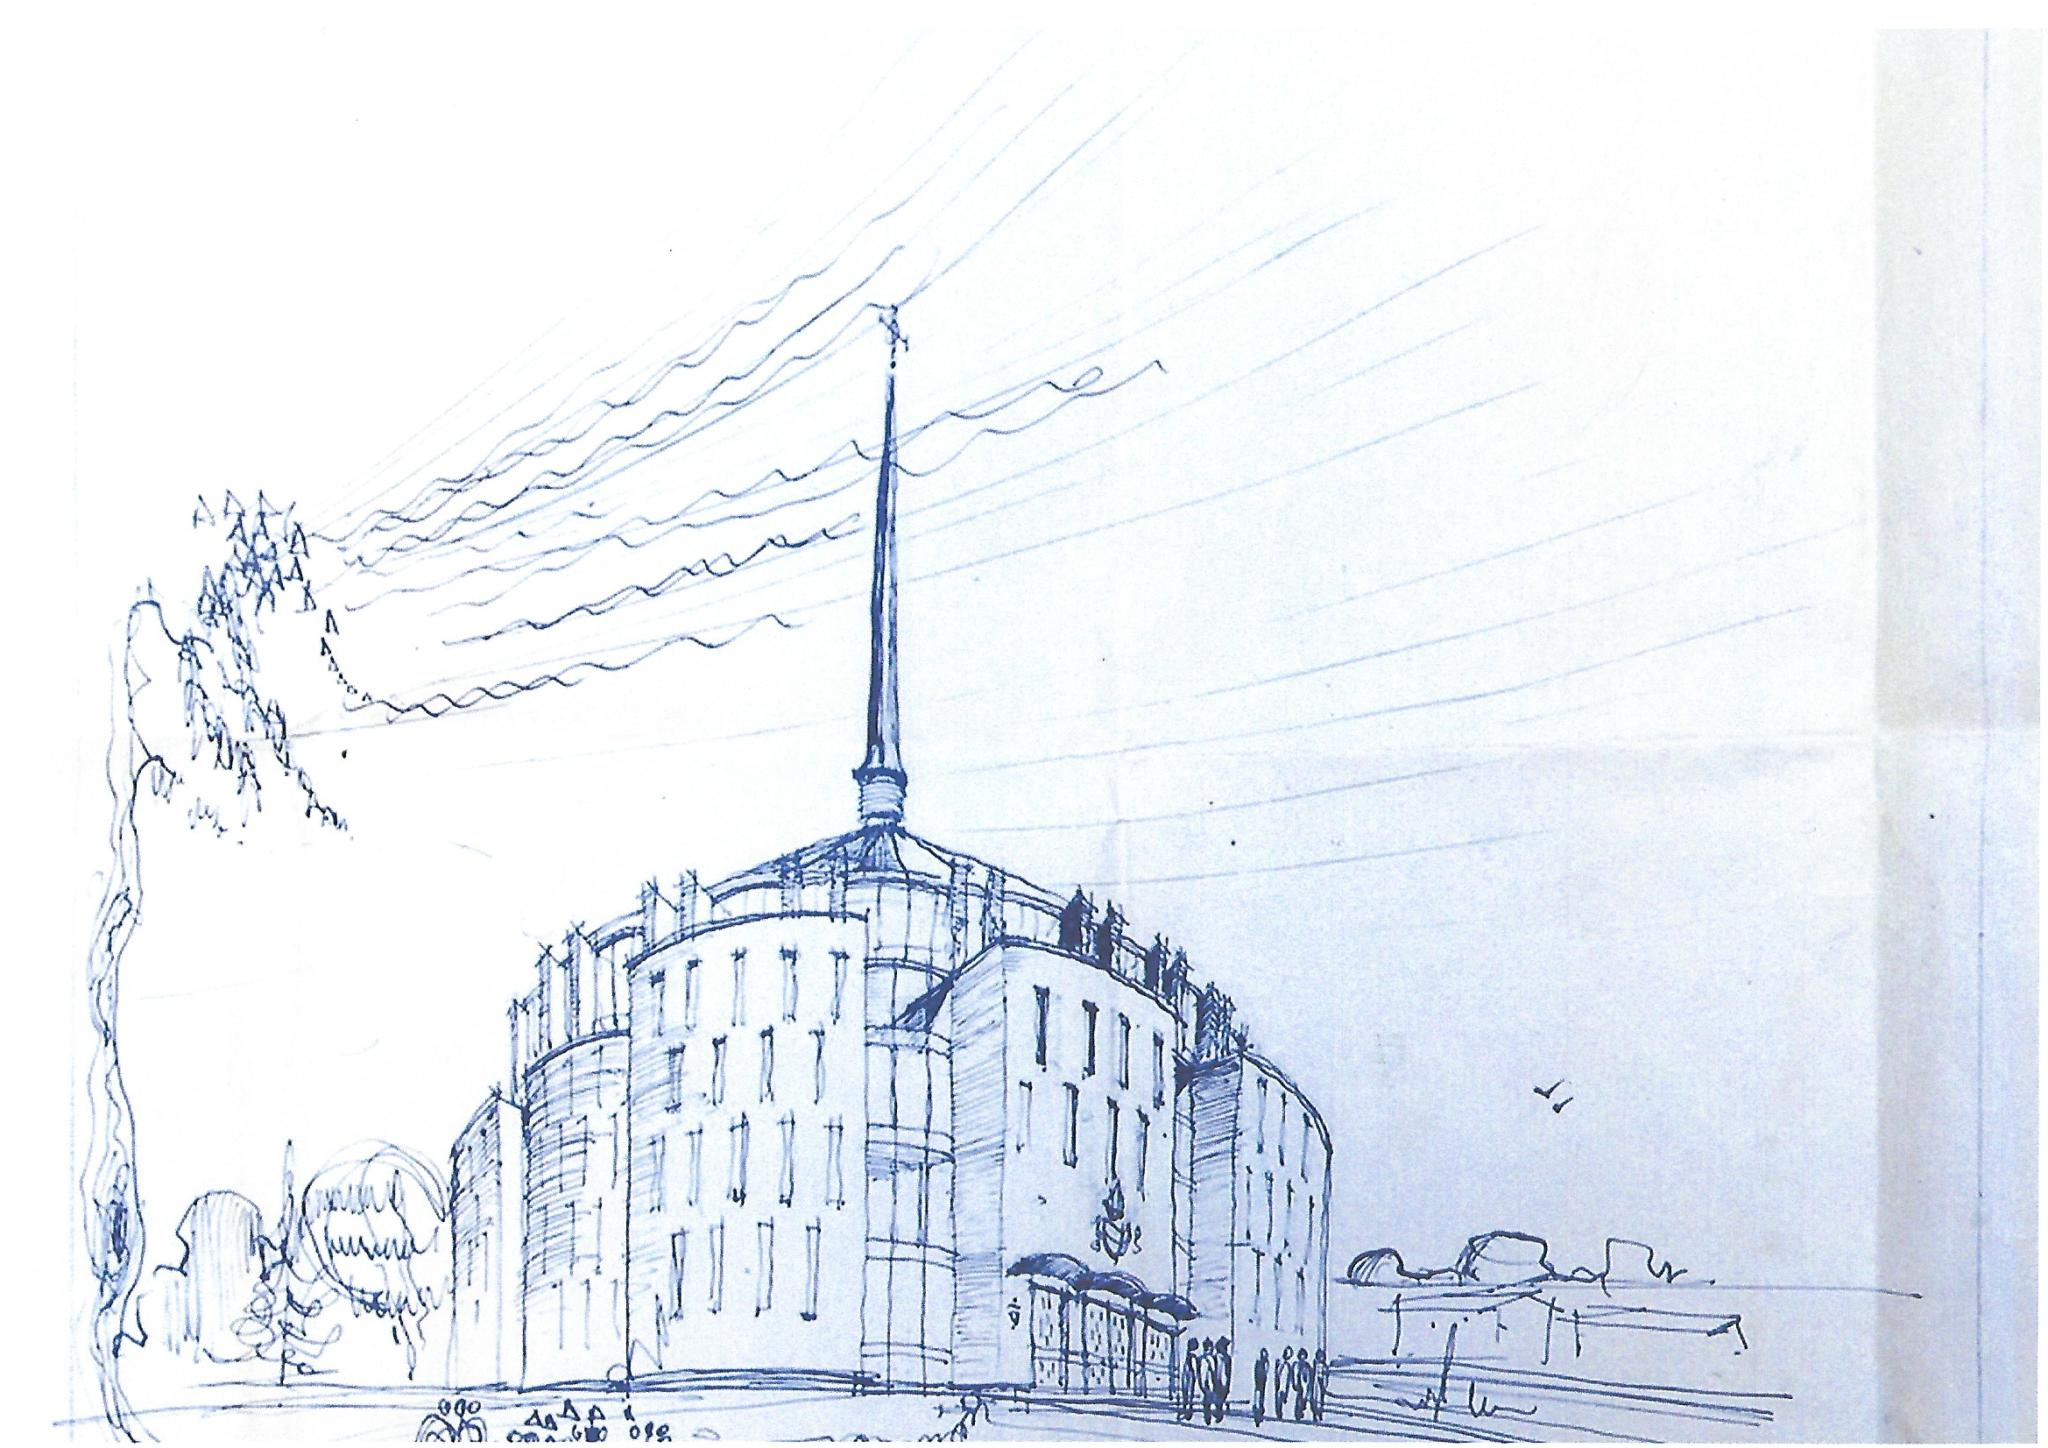 Roman Catholic Church of St Mary, sketch